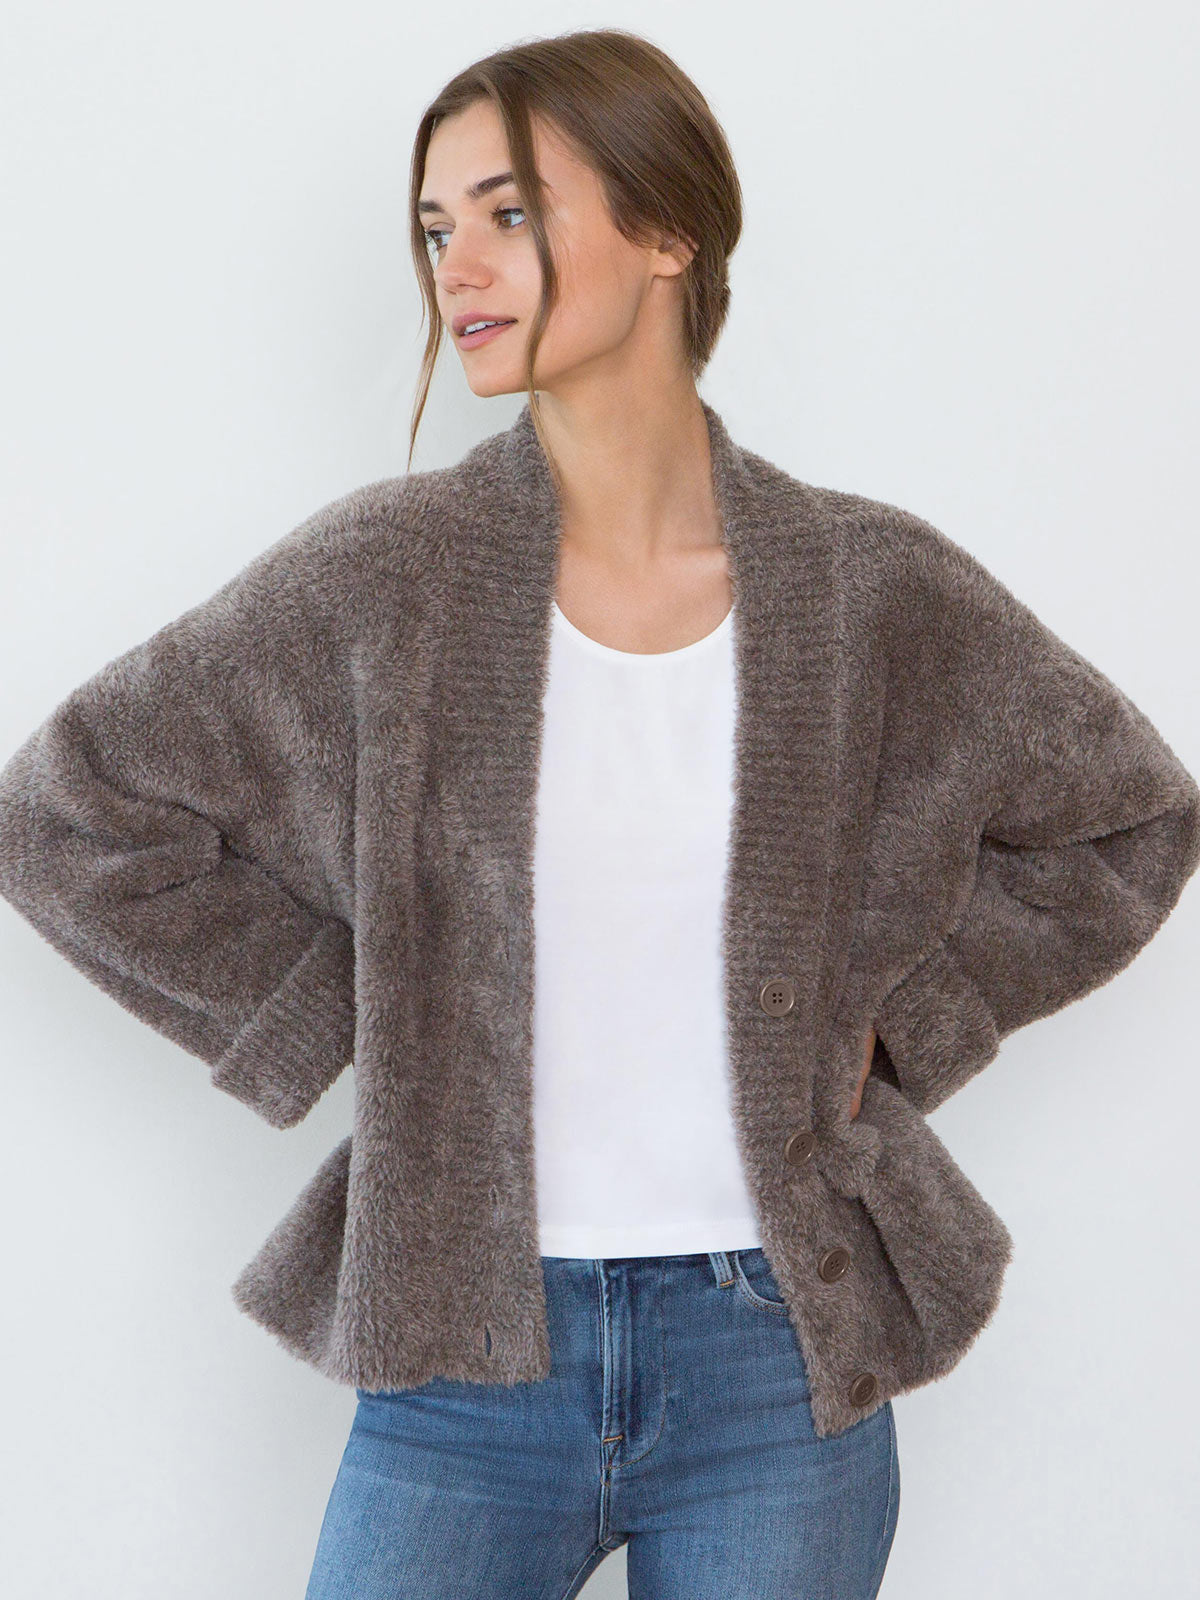 Teddy Oversized Merino Wool Cardigan | Mocha Teddy Oversized Merino Wool Cardigan | Mocha